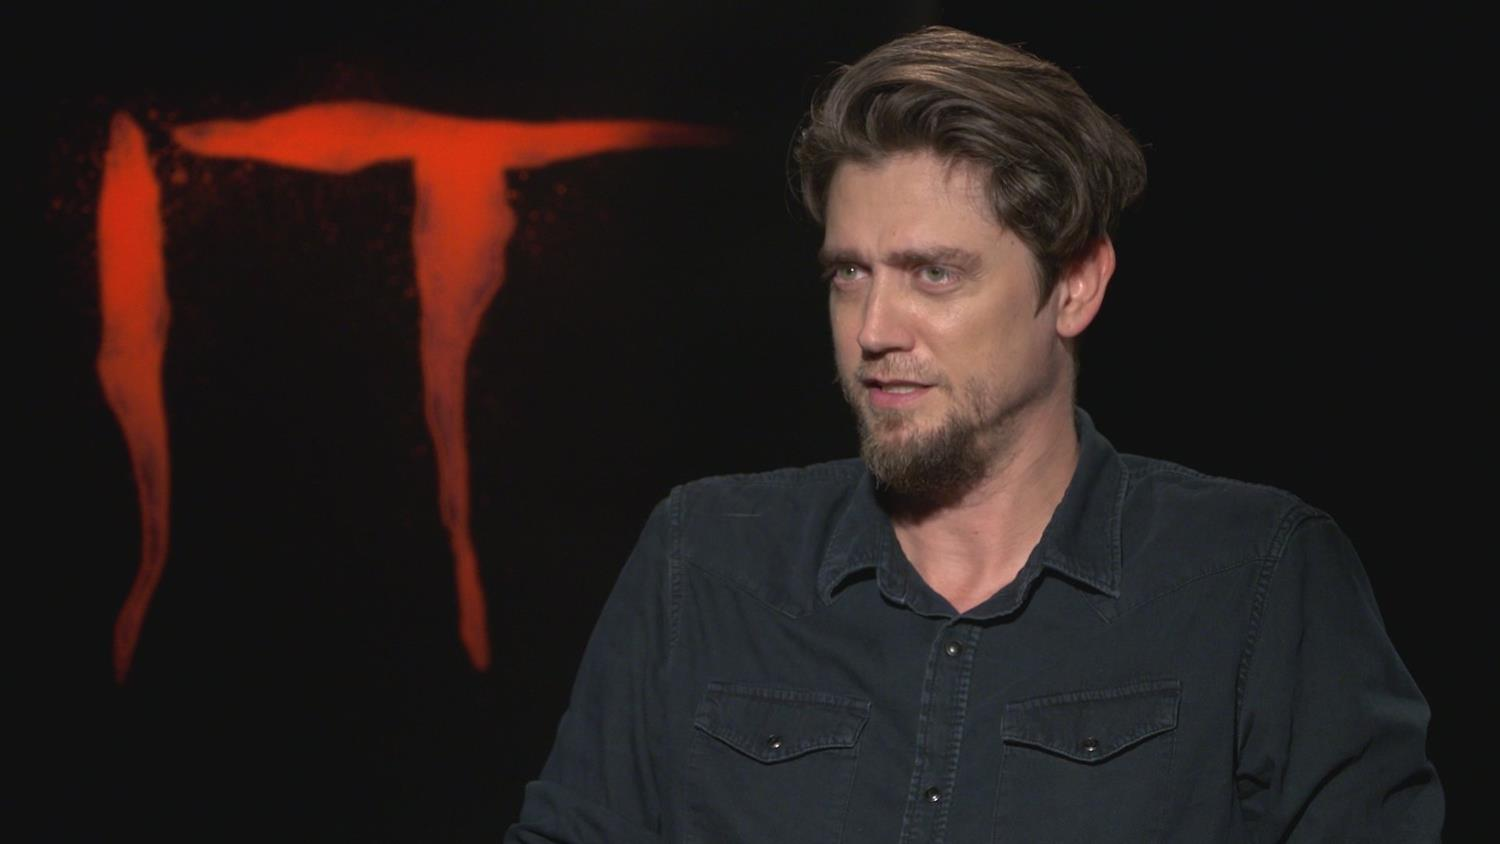 IT Director Andy Muschietti Teases Sequel, How He Saw Pennywise